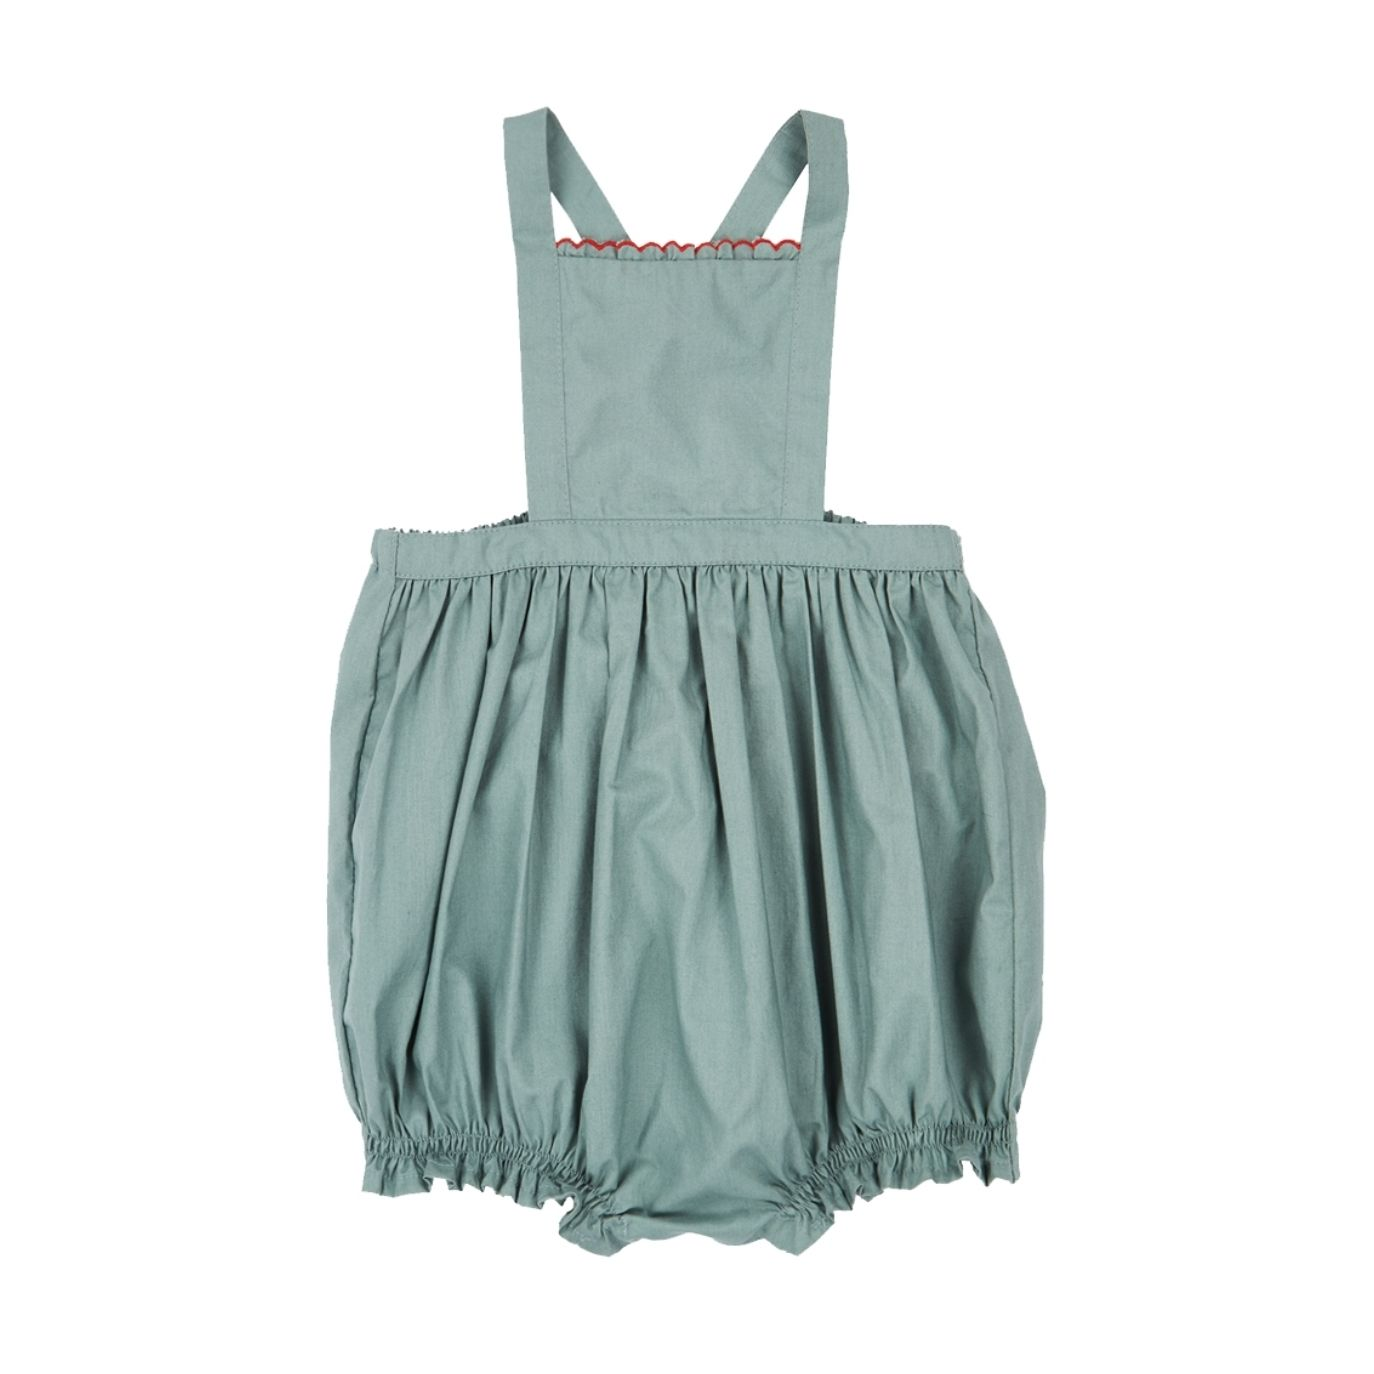 Caramel Baby & Child - Rompers Moorgate Baby szary - 1